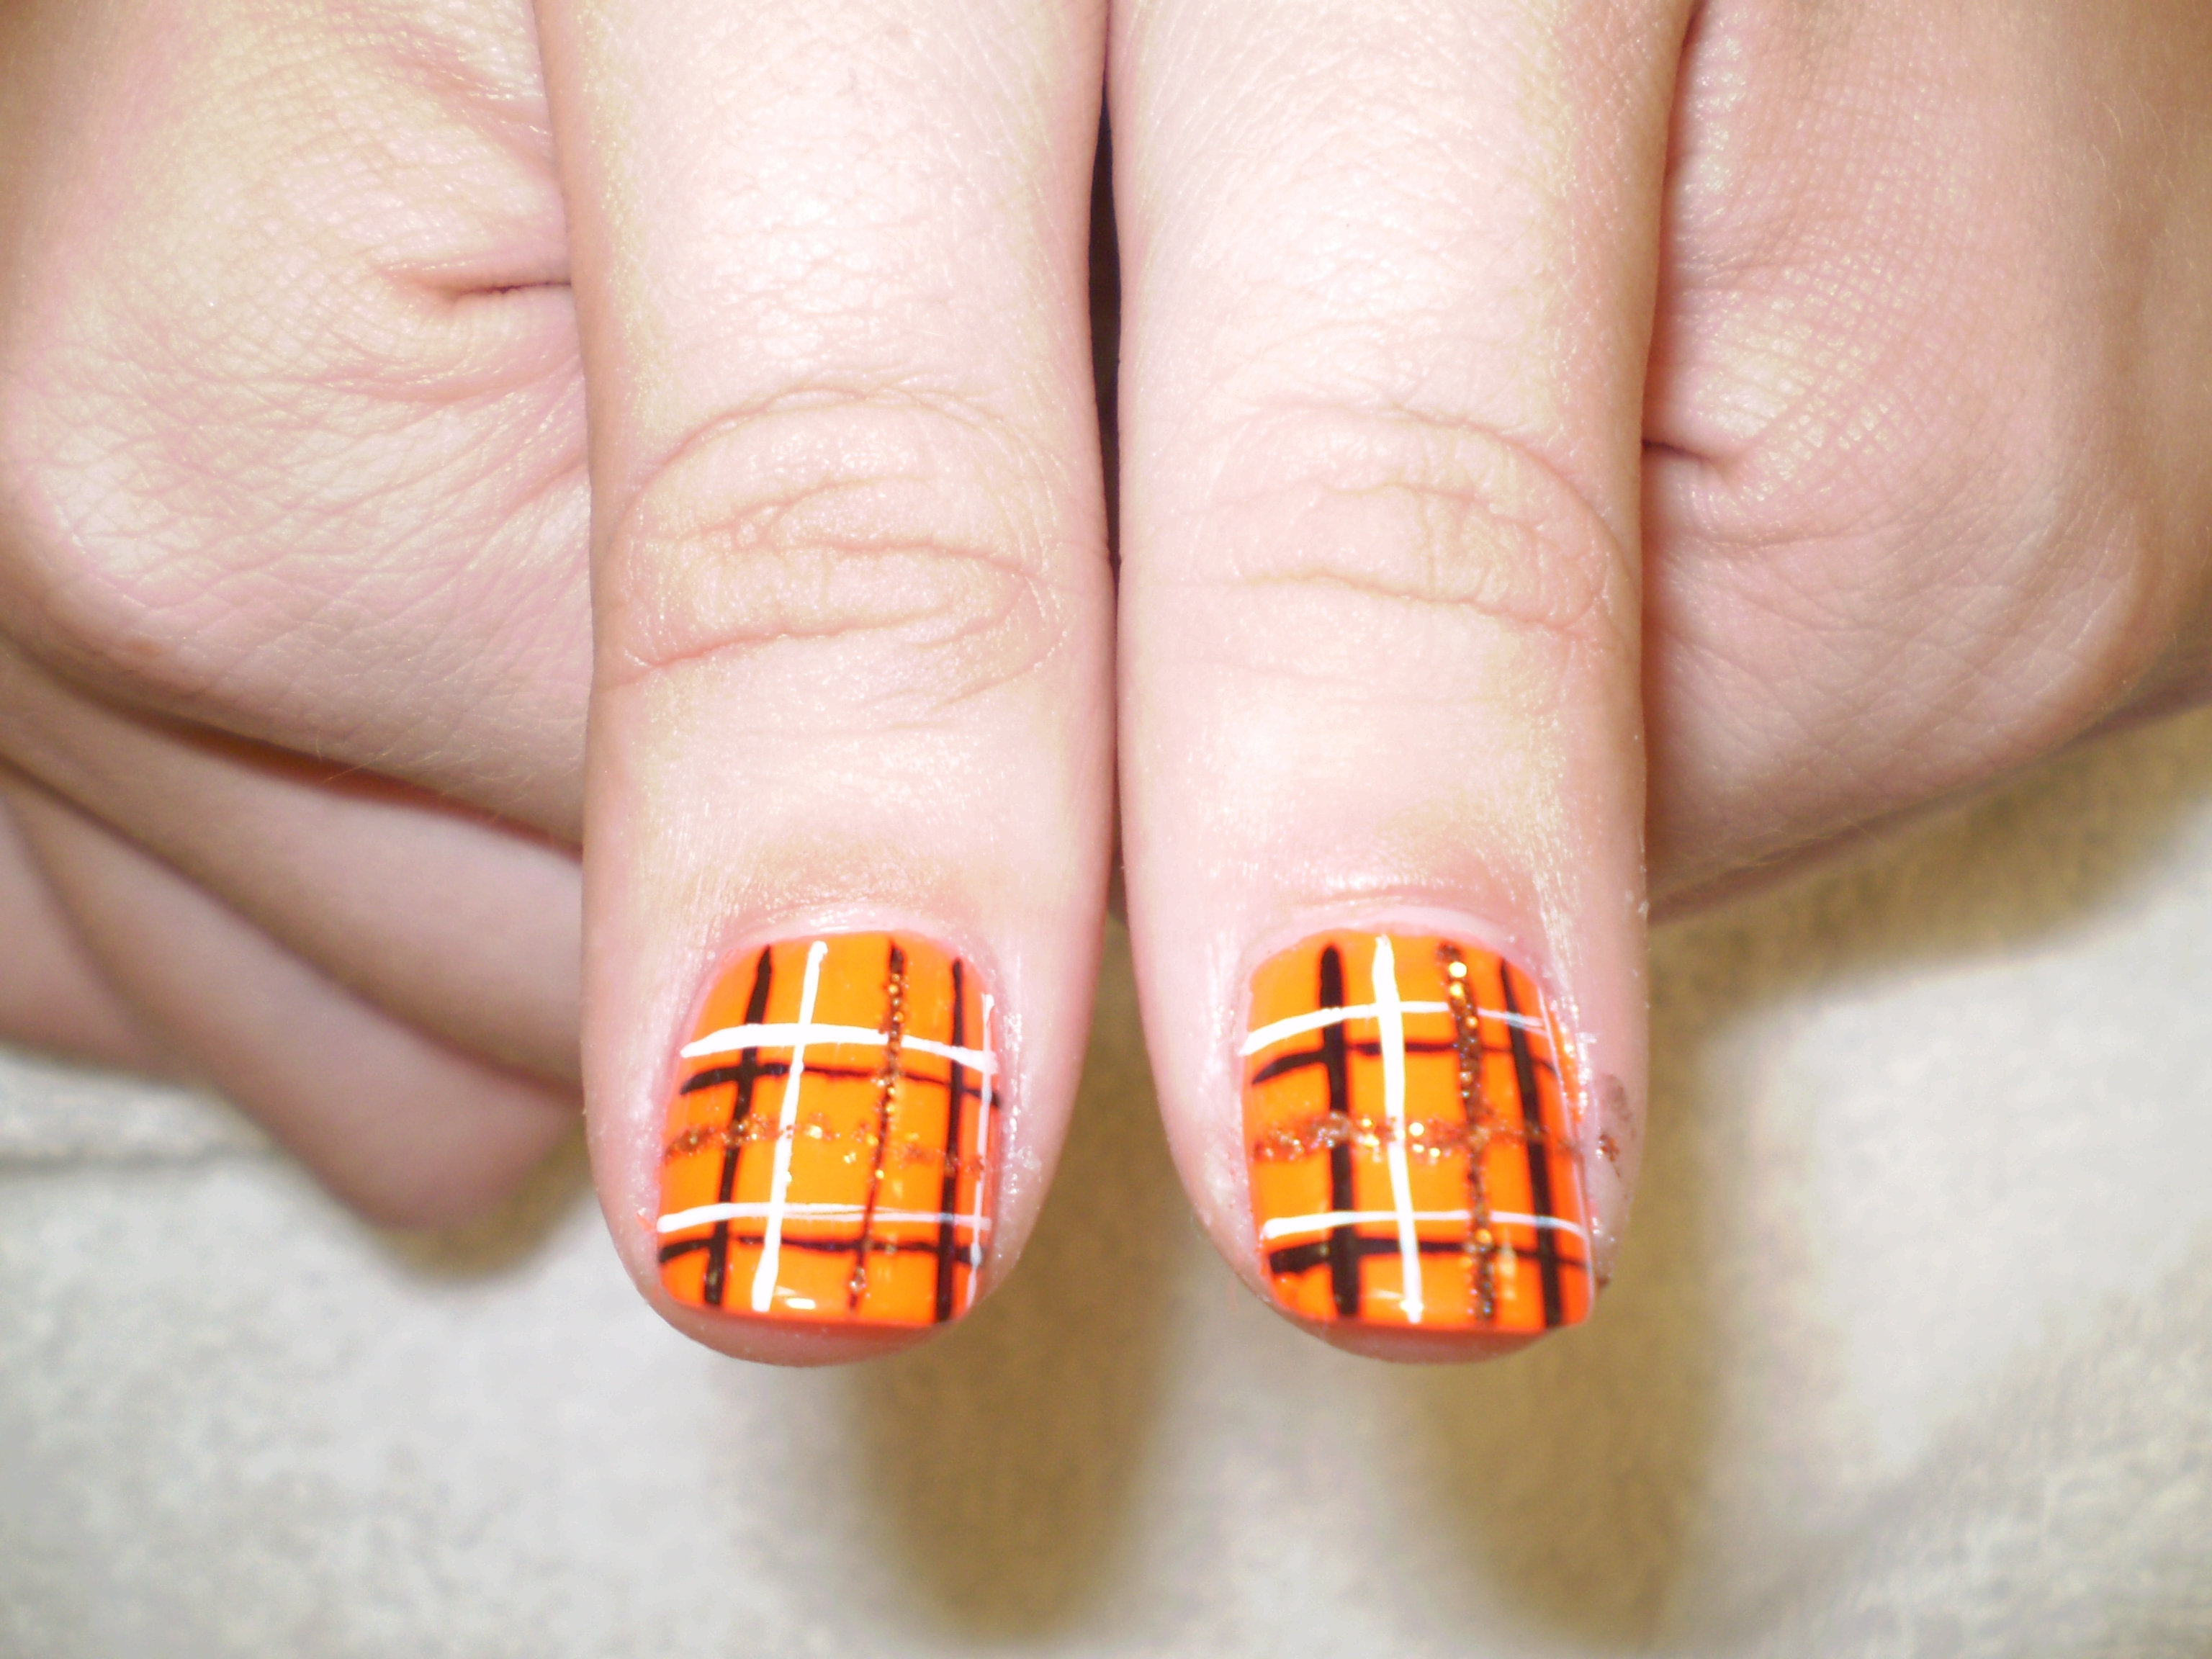 Peridot Nail Salon » Blog Archive » Back-to-school special @ Peridot ...